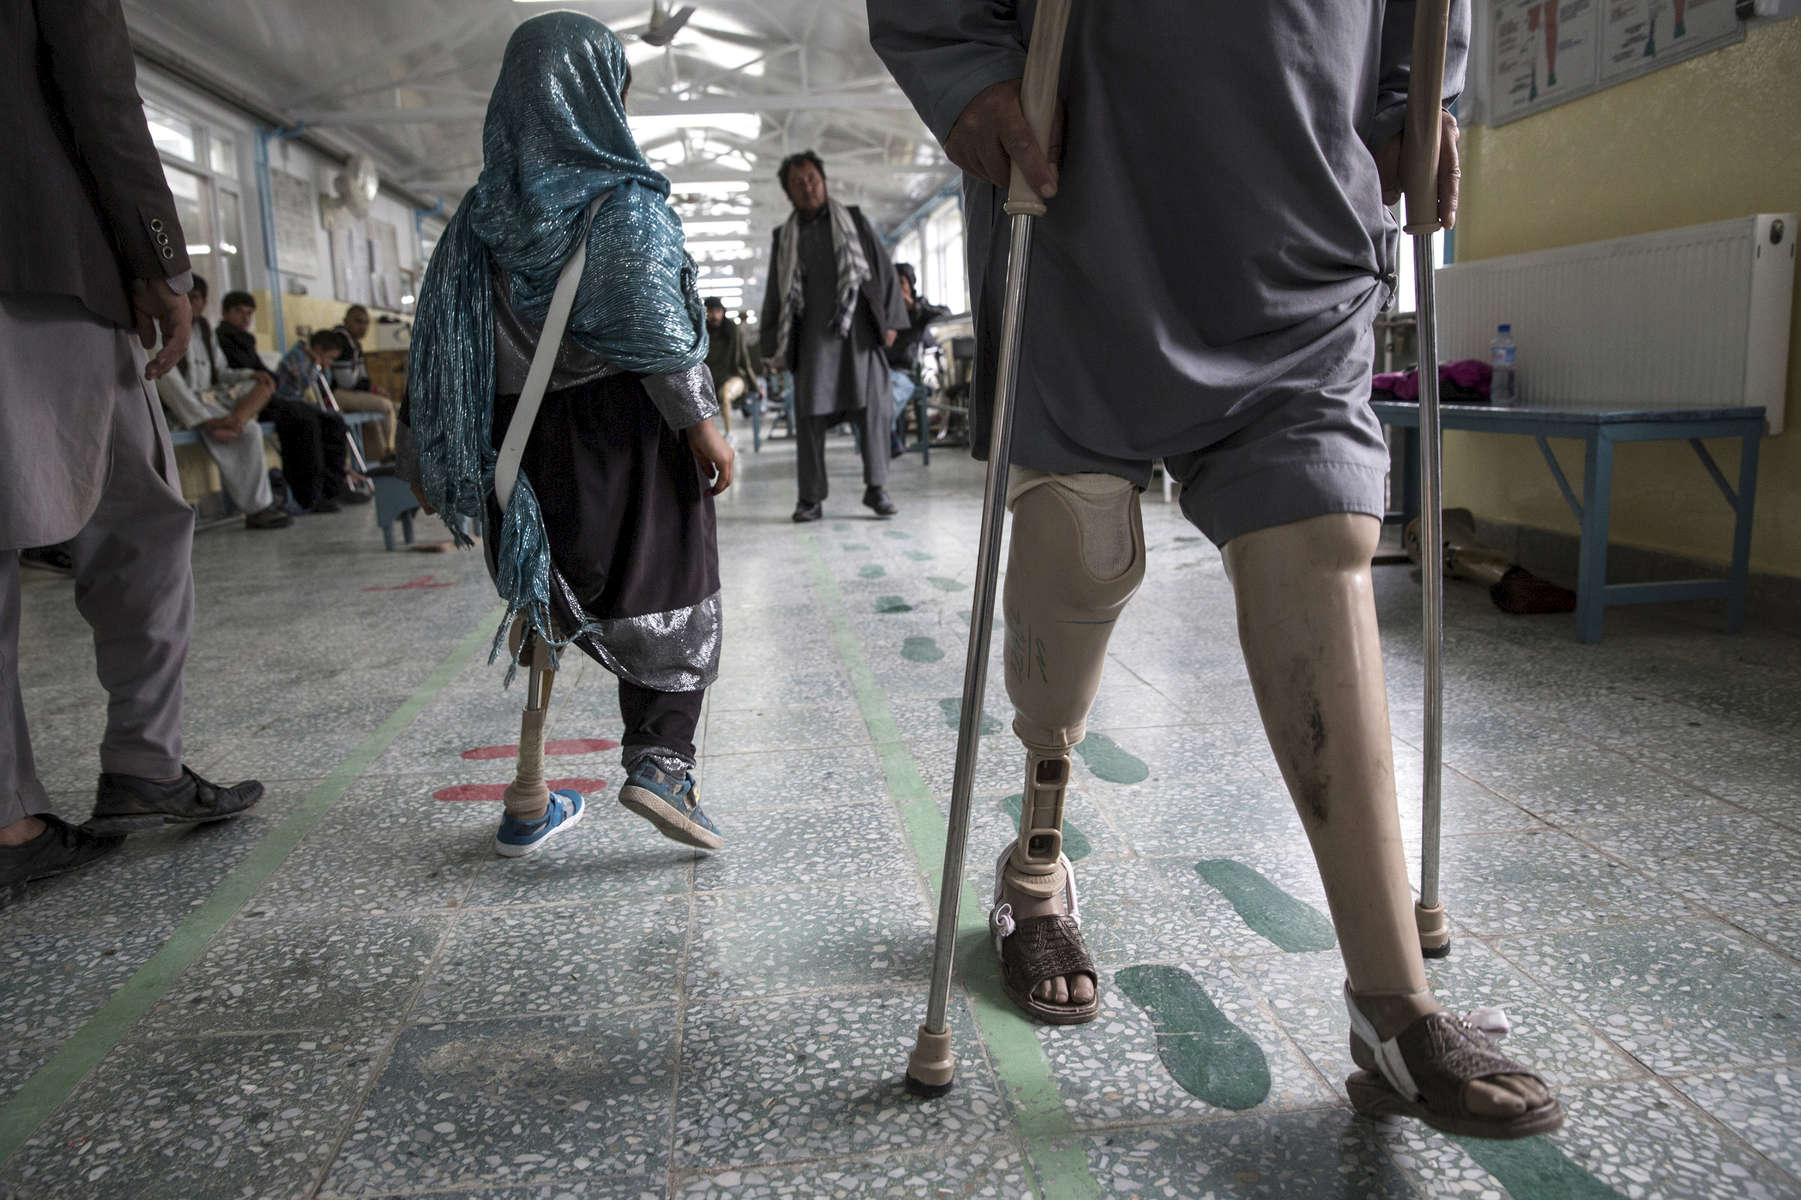 KABUL, AFGHANISTAN -APRIL 2, 2016: At the ICRC Orthopedic center handicapped patients practice walking on their prosthetics. Afghan civilians are at greater risk today than at any time since Taliban rule. According to UN statistics, in the first half of 2016 at least 1,600 people had died, and more than 3,500 people were injured, a 4 per cent increase in overall civilian causalities compared to the same period last year. The upsurge in violence has had devastating consequences for civilians, with suicide bombings and targeted attacks by the Taliban and other insurgents causing 70 percent of all civilian casualties.